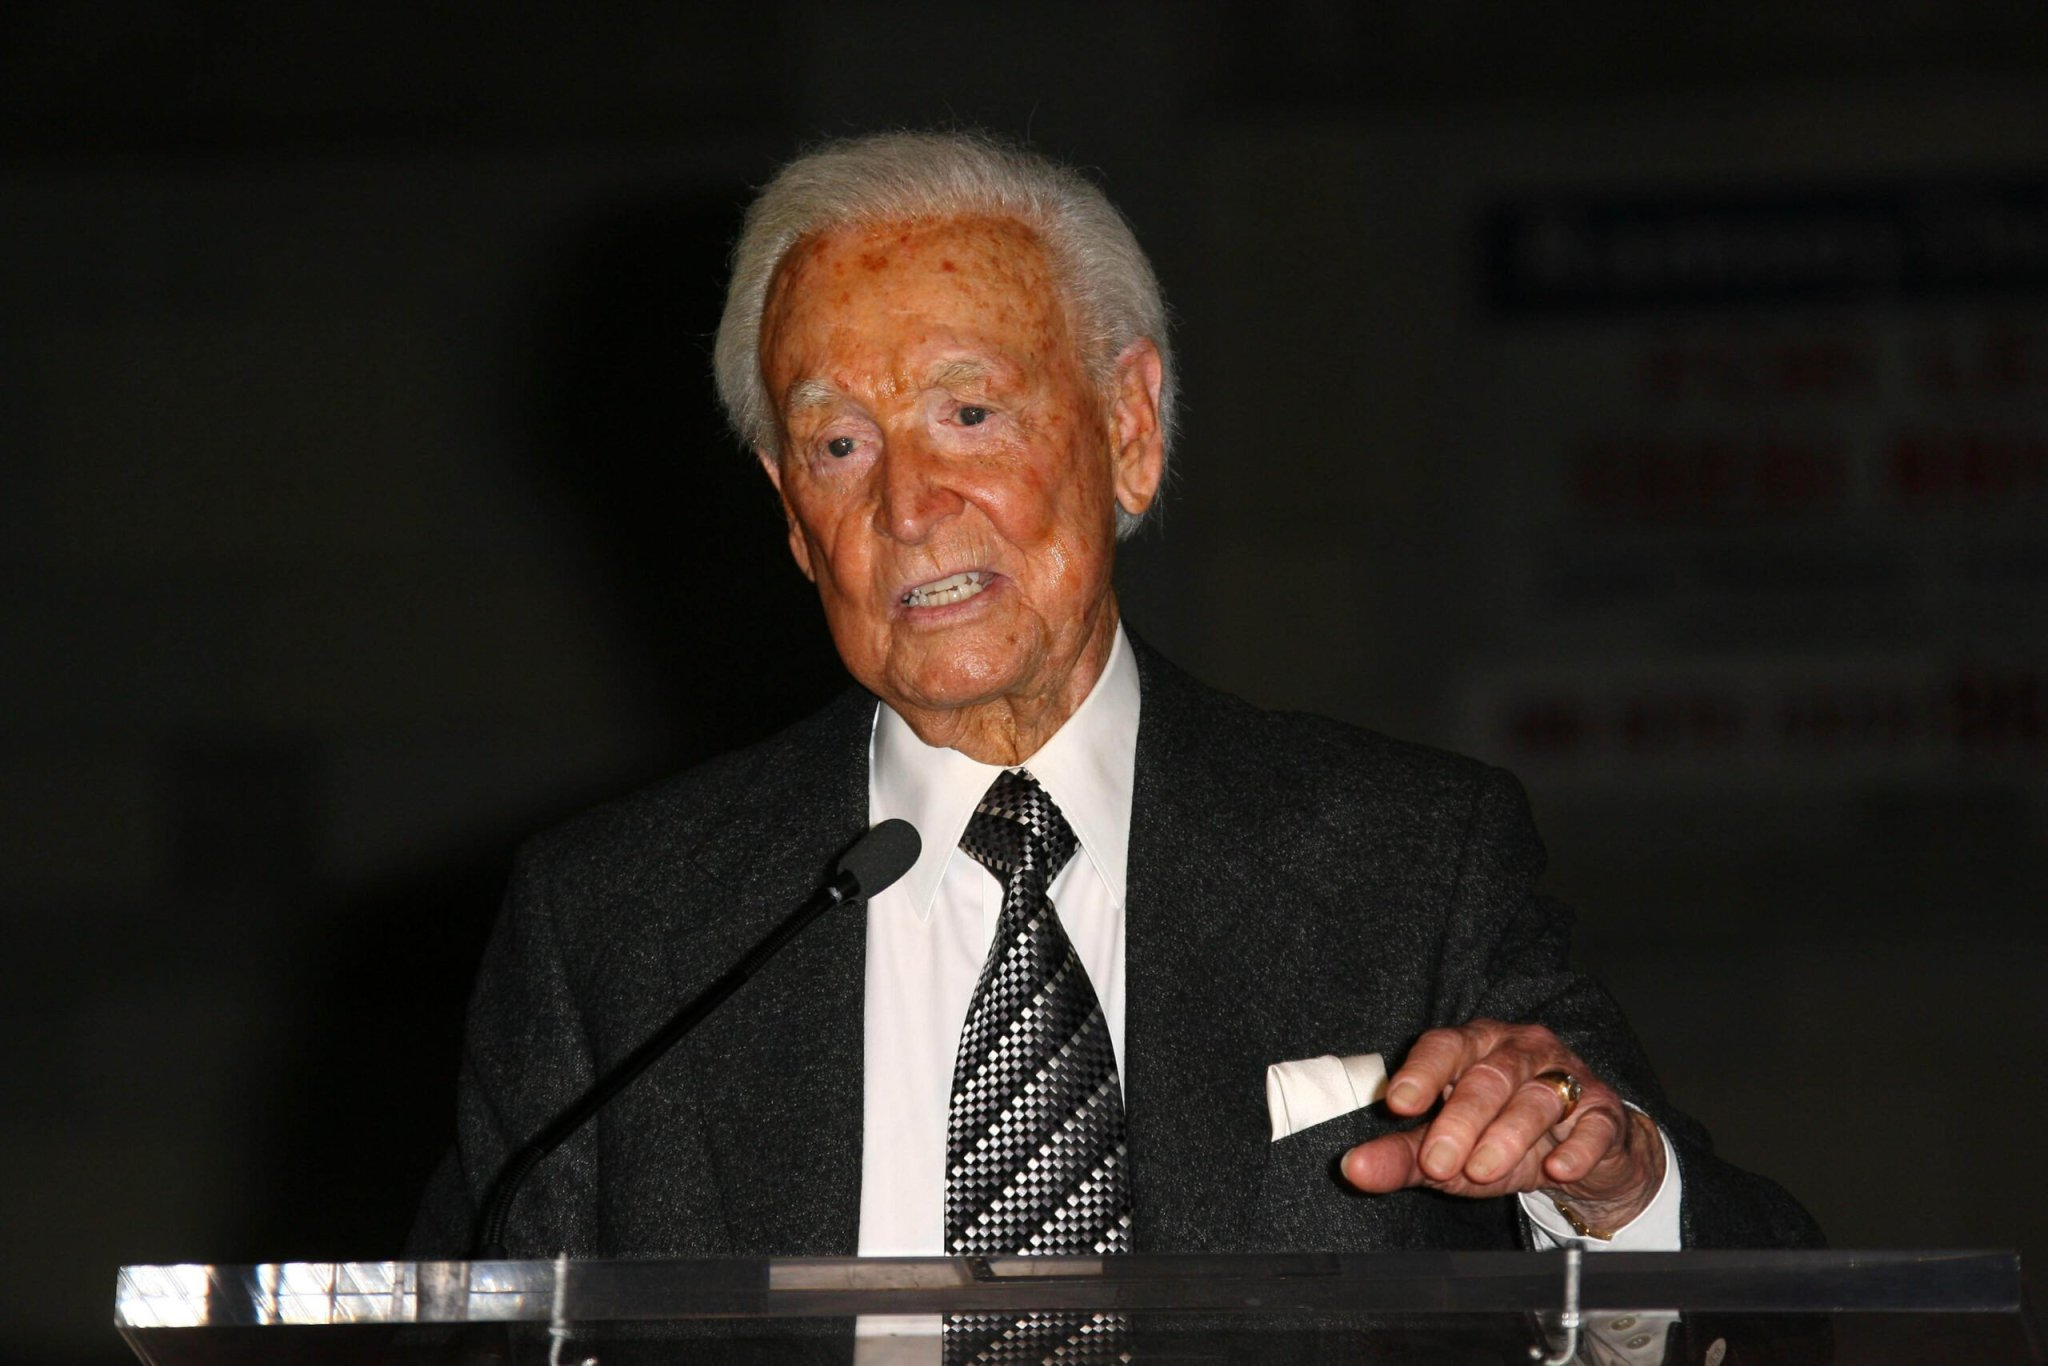 Report: Bob Barker Frail And 'Fading Away'